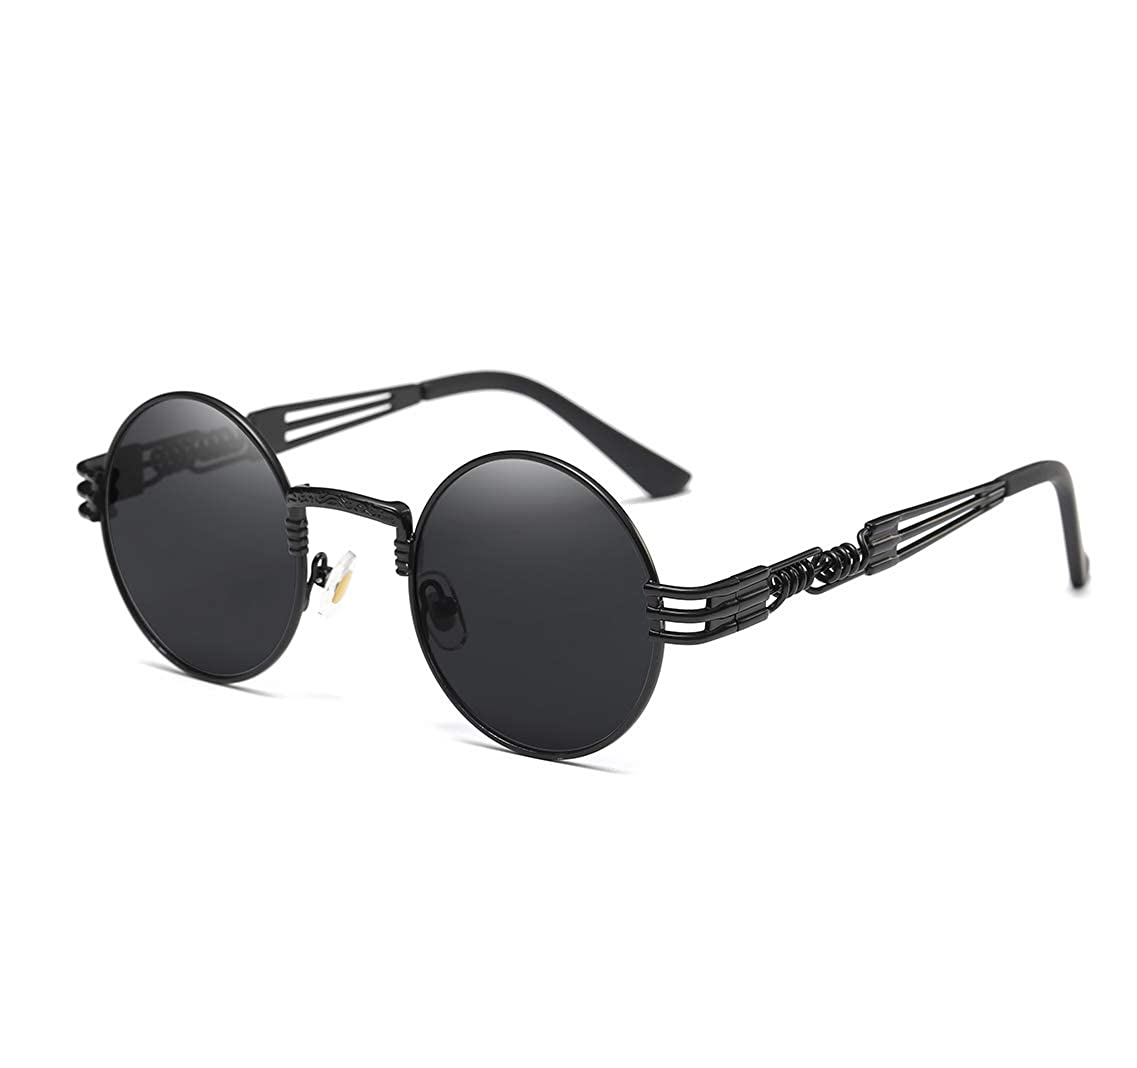 3256c3c21d Amazon.com  GAMT John Lennon Glasses Quavo Steampunk Round Sunglasses  Circle Metal Frame Eyewear for Men and Women Black Frame Grey Lens  Shoes